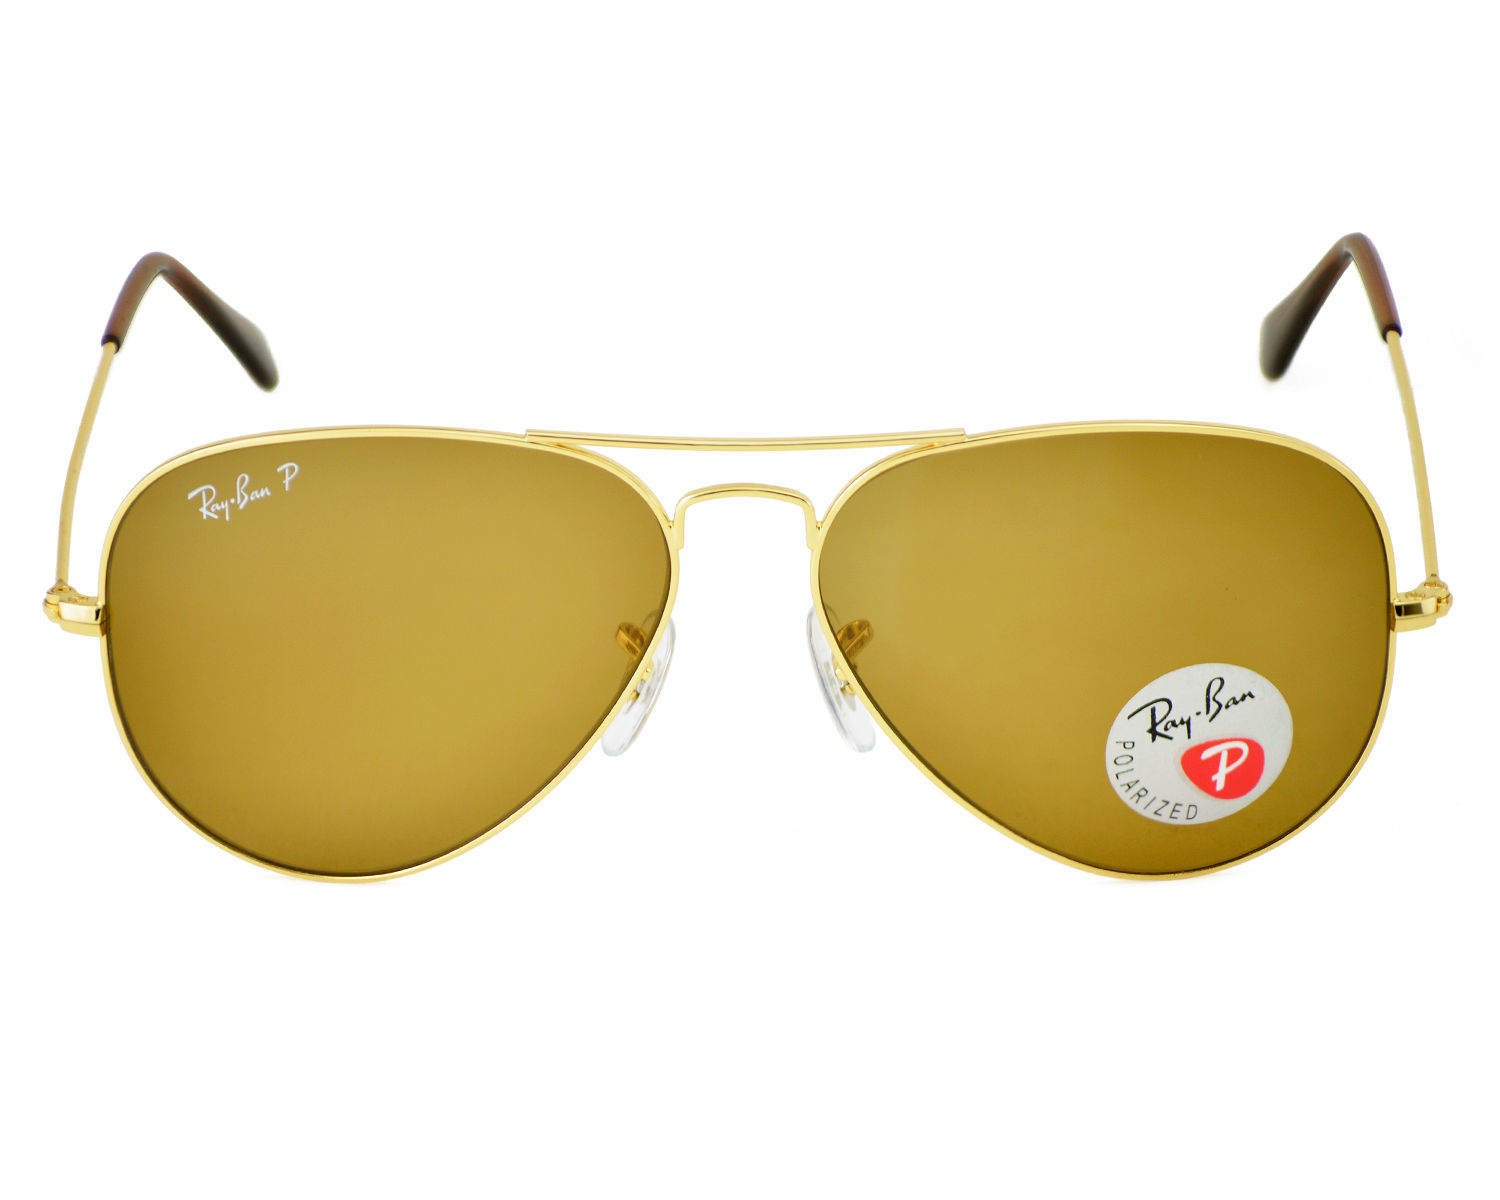 580d410cd2f43a ... sunglasses 0fc84 ba17d  cheap ray ban rb3025 aviator classic 001 57  gold frame polarized brown classic b 15 lenses